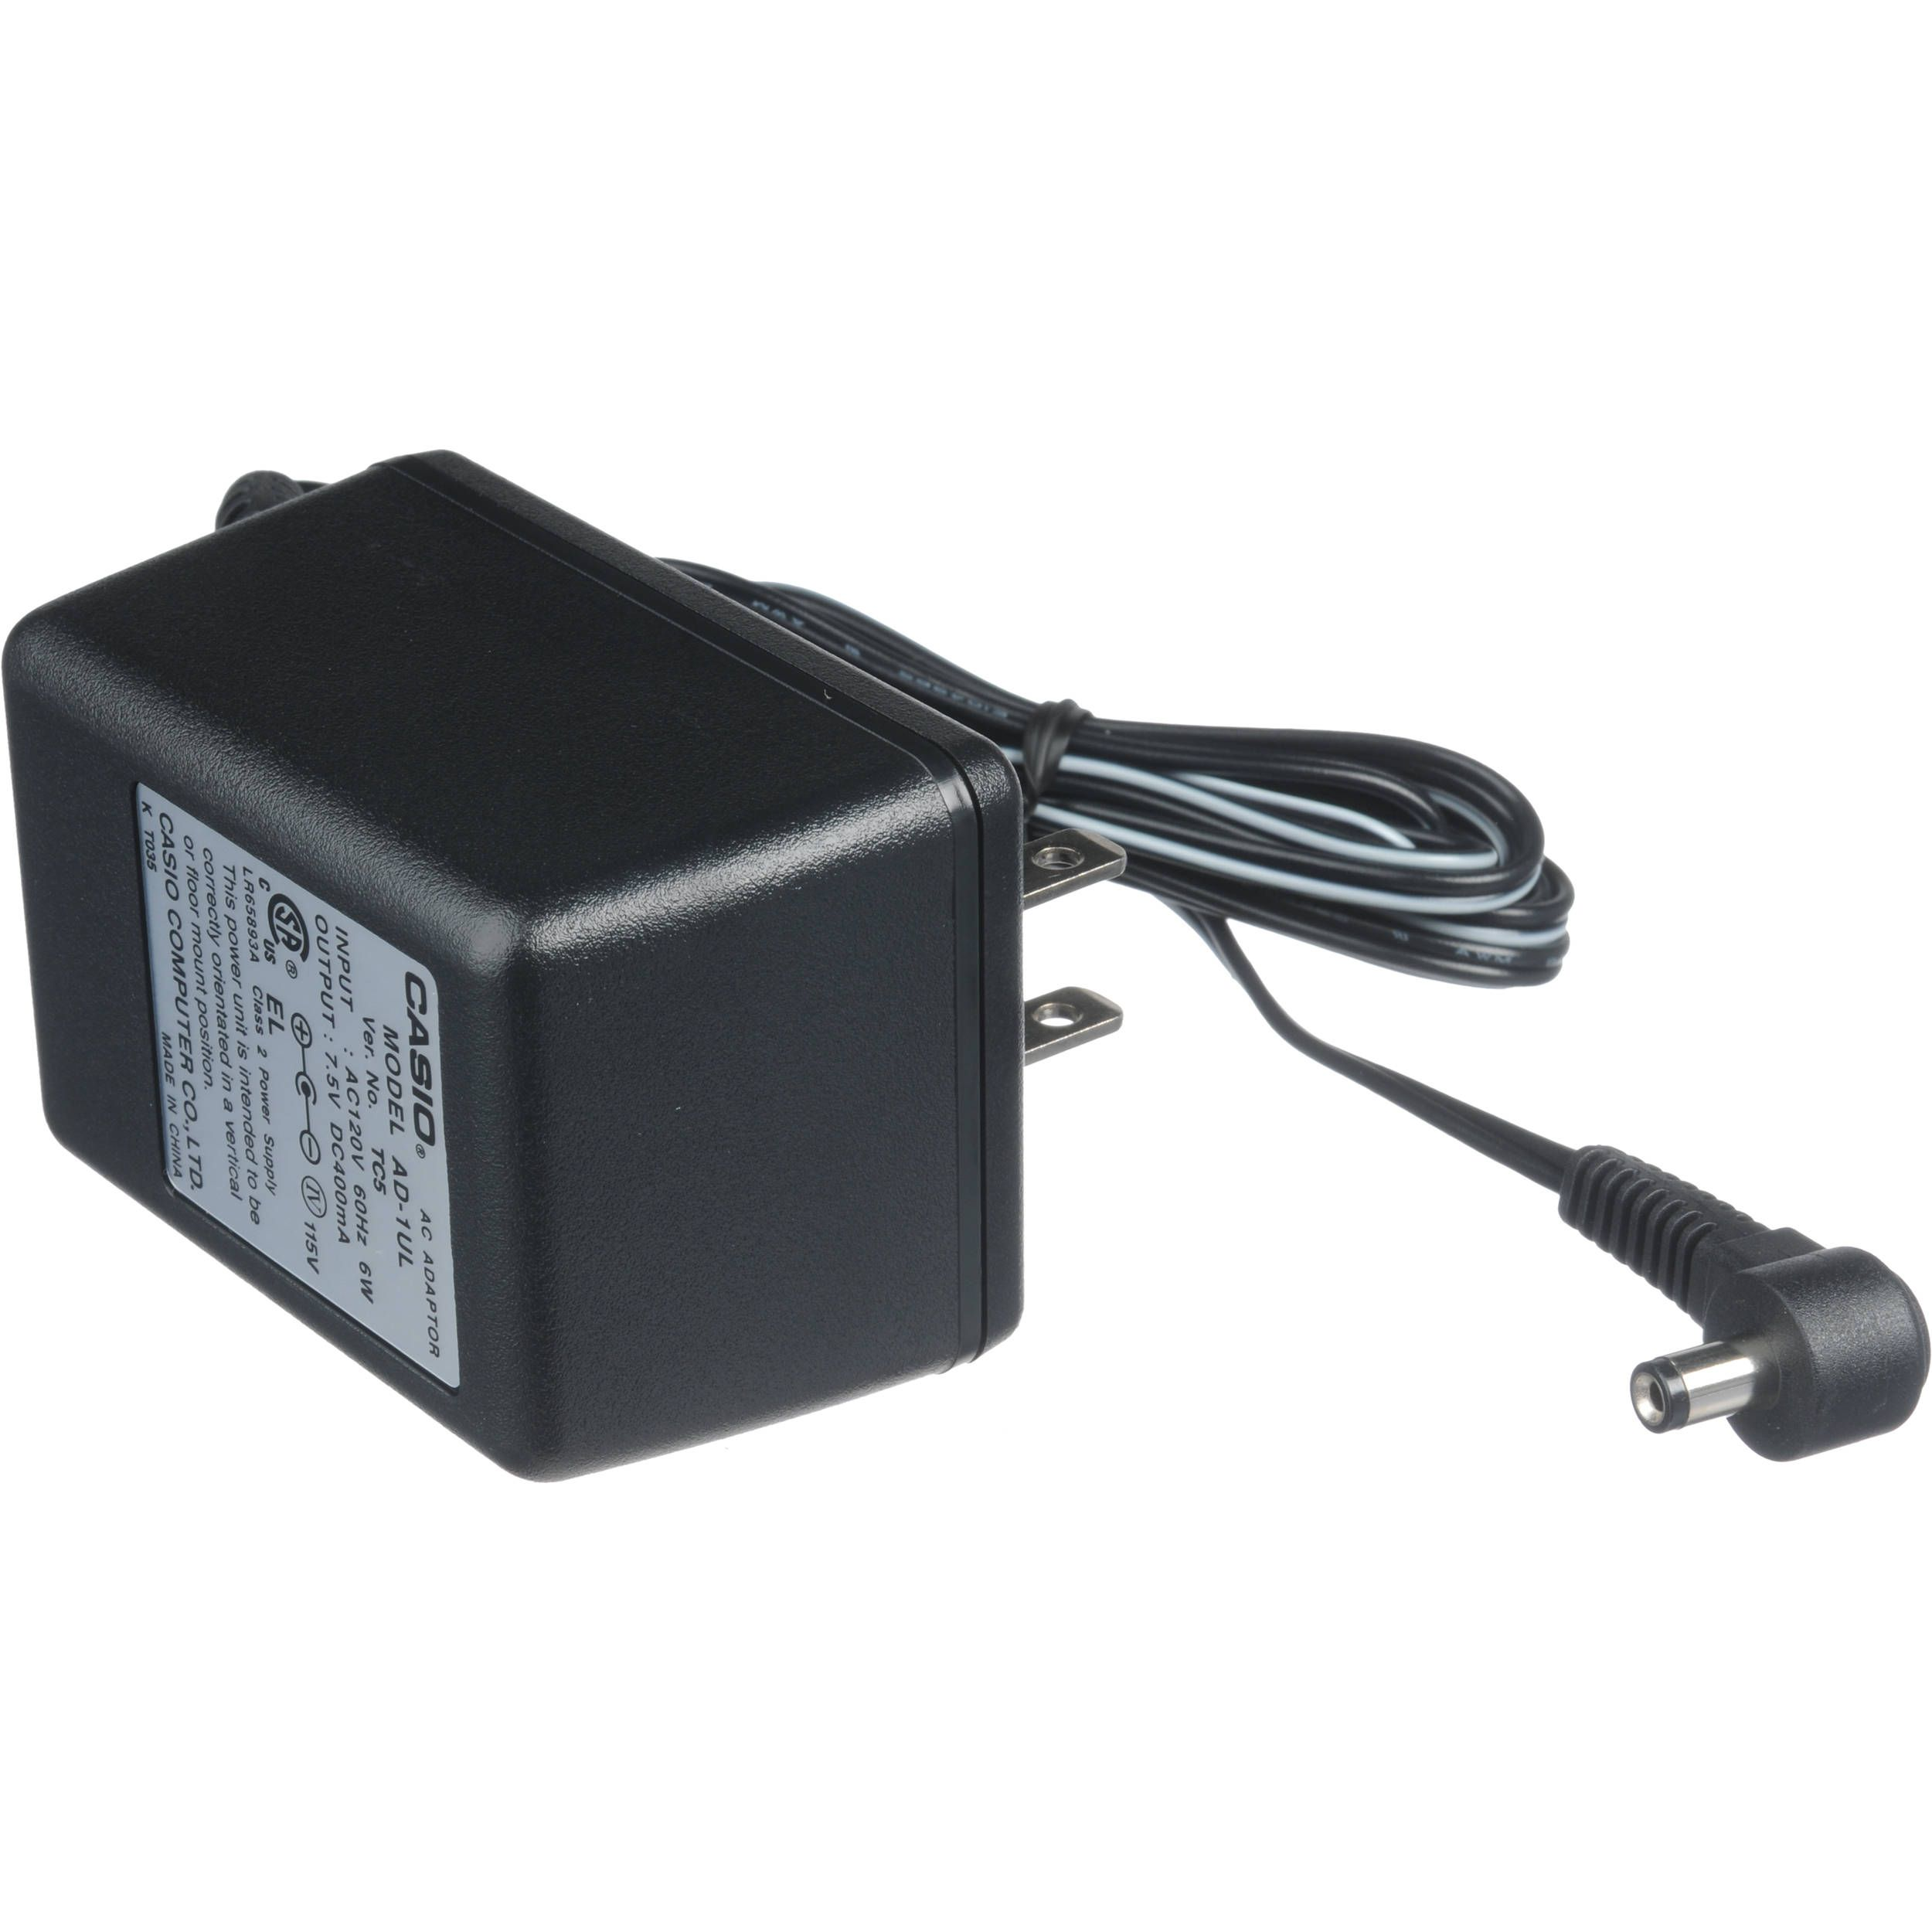 100 Brand New 240v 2 1mm 7 5v Casio Ad 1a Power Supply Ac Adapter Free Shipping Computer Power Supplies Power Supply Universal Power Adapter